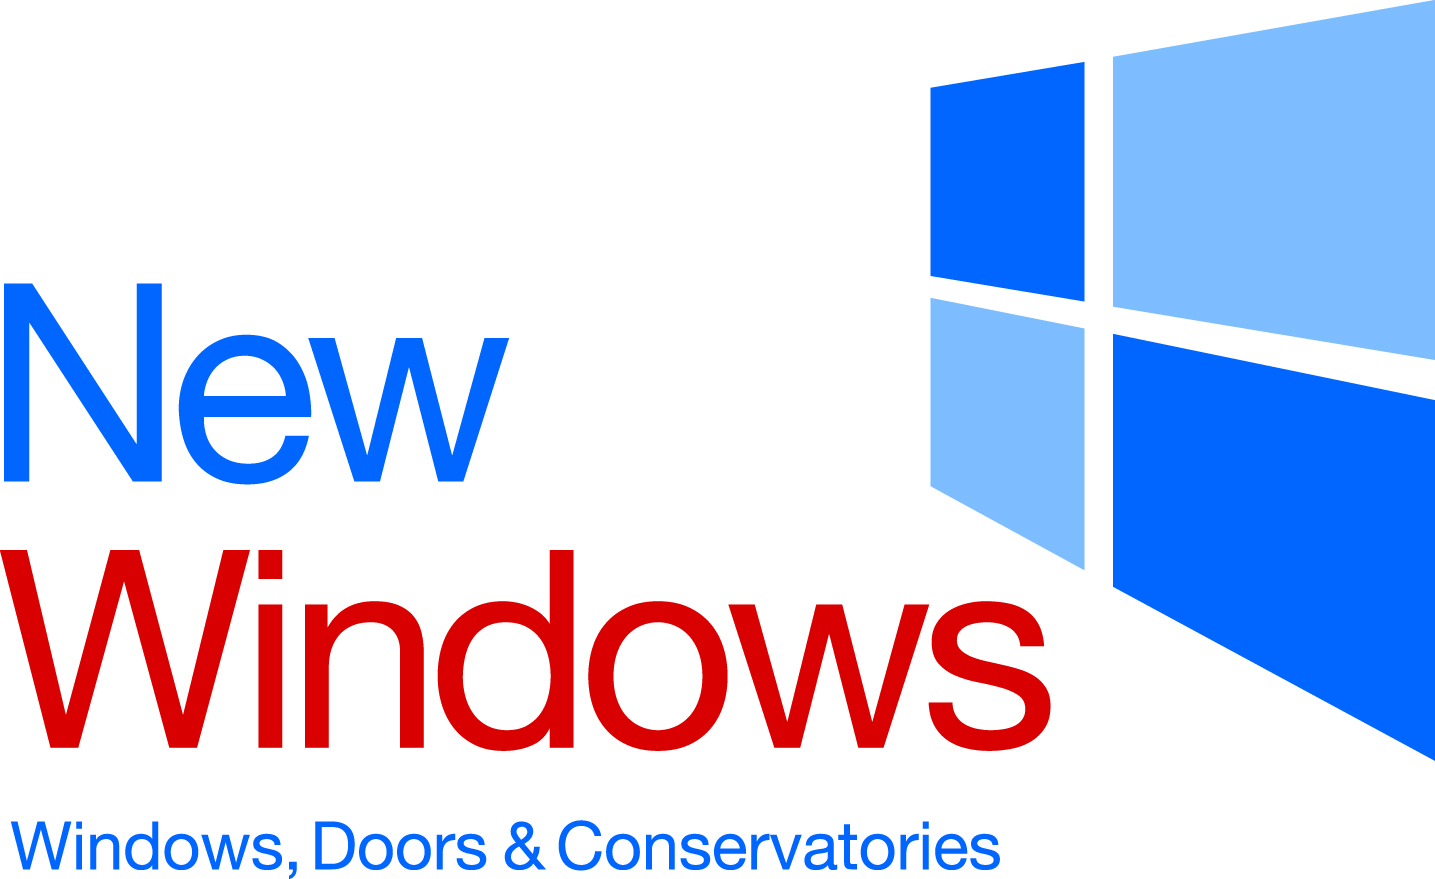 New Windows Ltd